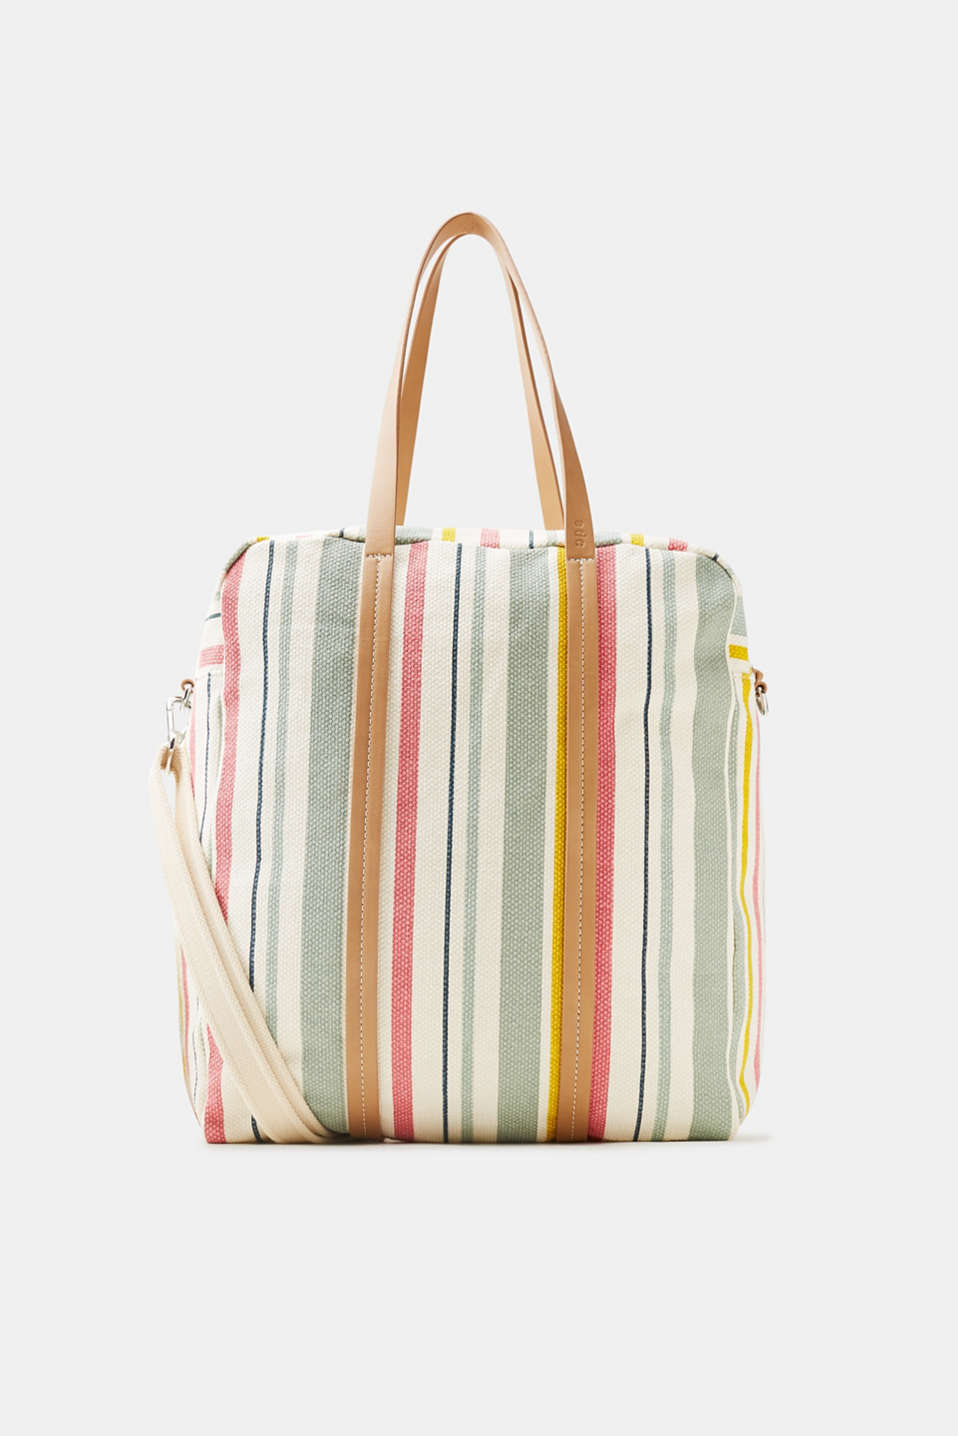 edc - Shopper with colourful stripes, made of cotton